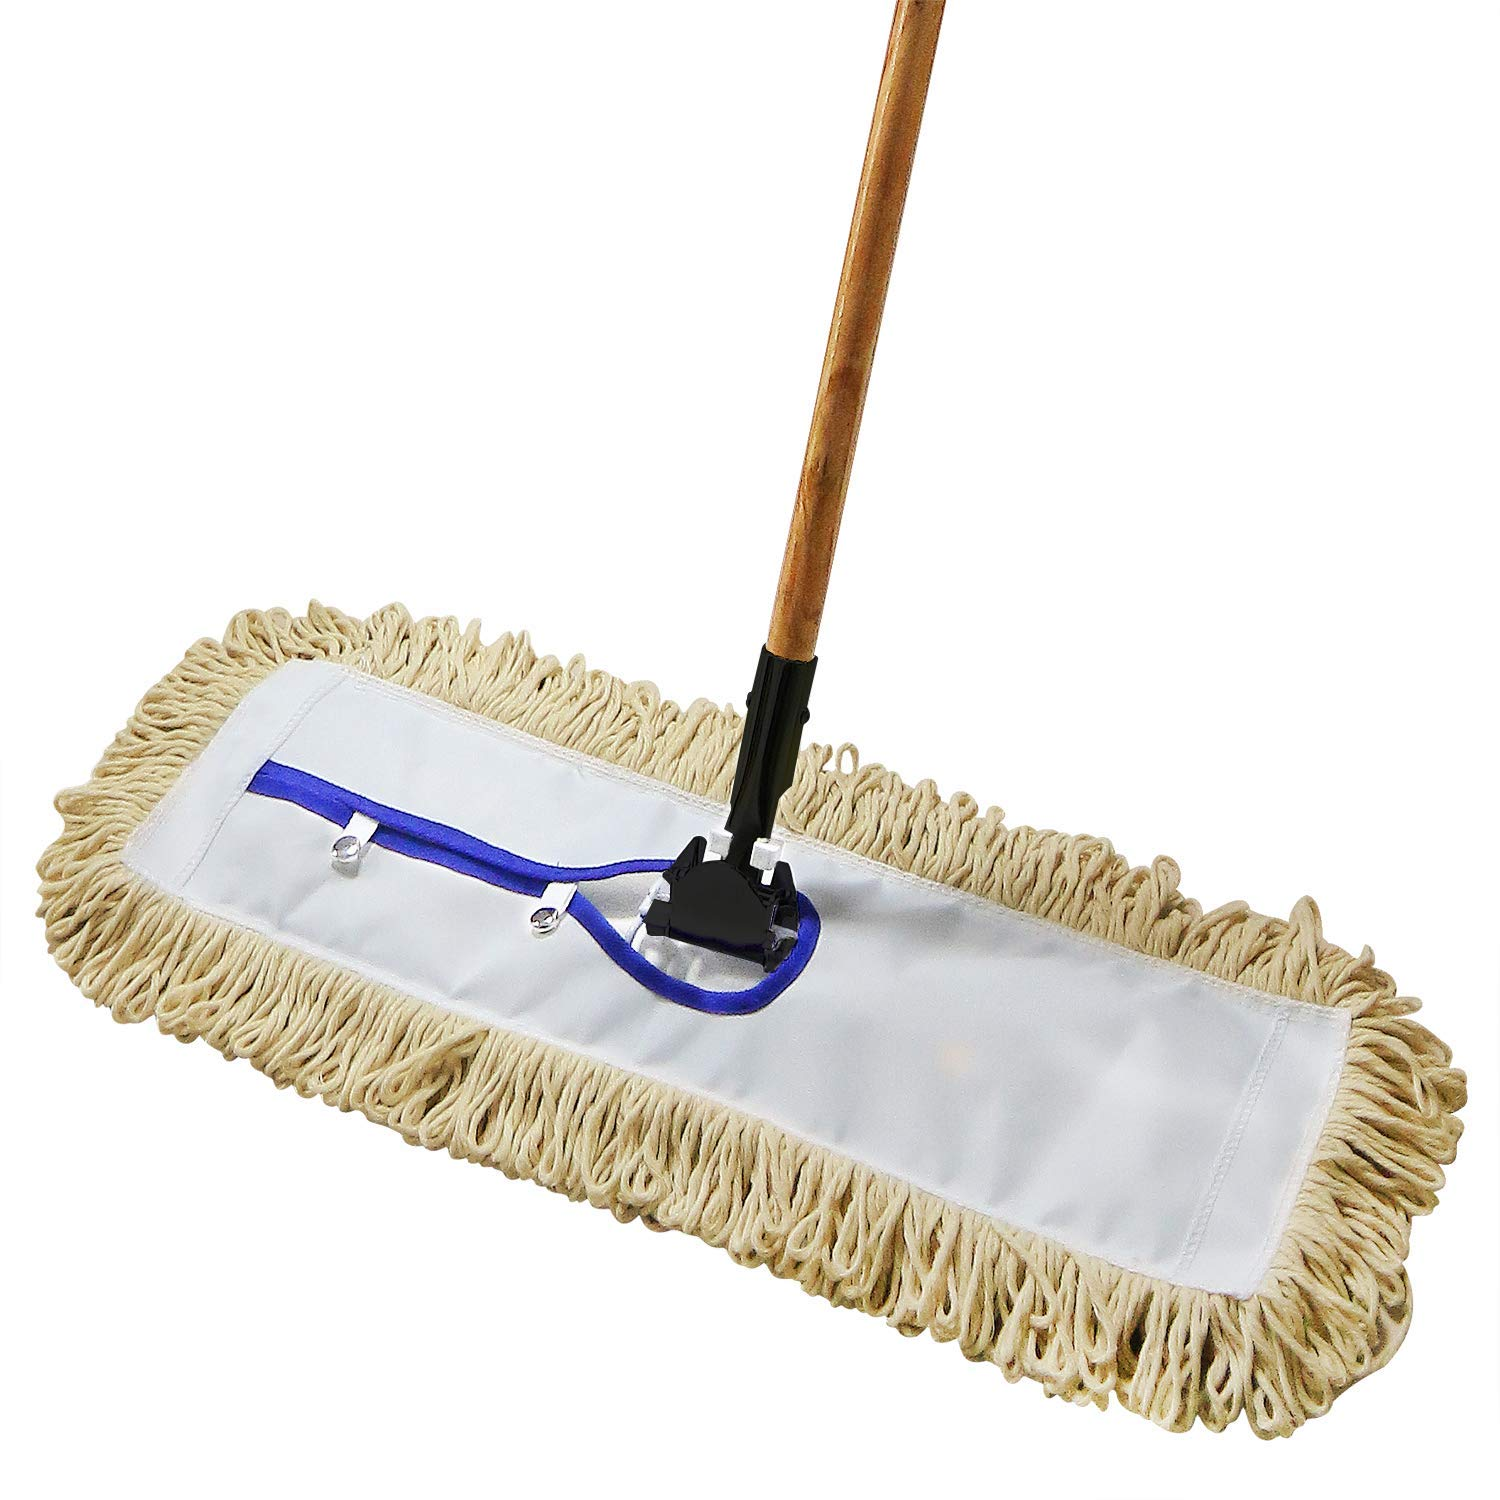 24'' Industrial Strength Loop-End Cotton Dust Mop with 56'' Long Wood Handle and Metal Frame, Best Value for Wet and Dry Mopping on Hardwood, Laminate, Concrete Floor Thick Tufted Mop Head by Tidy Monster